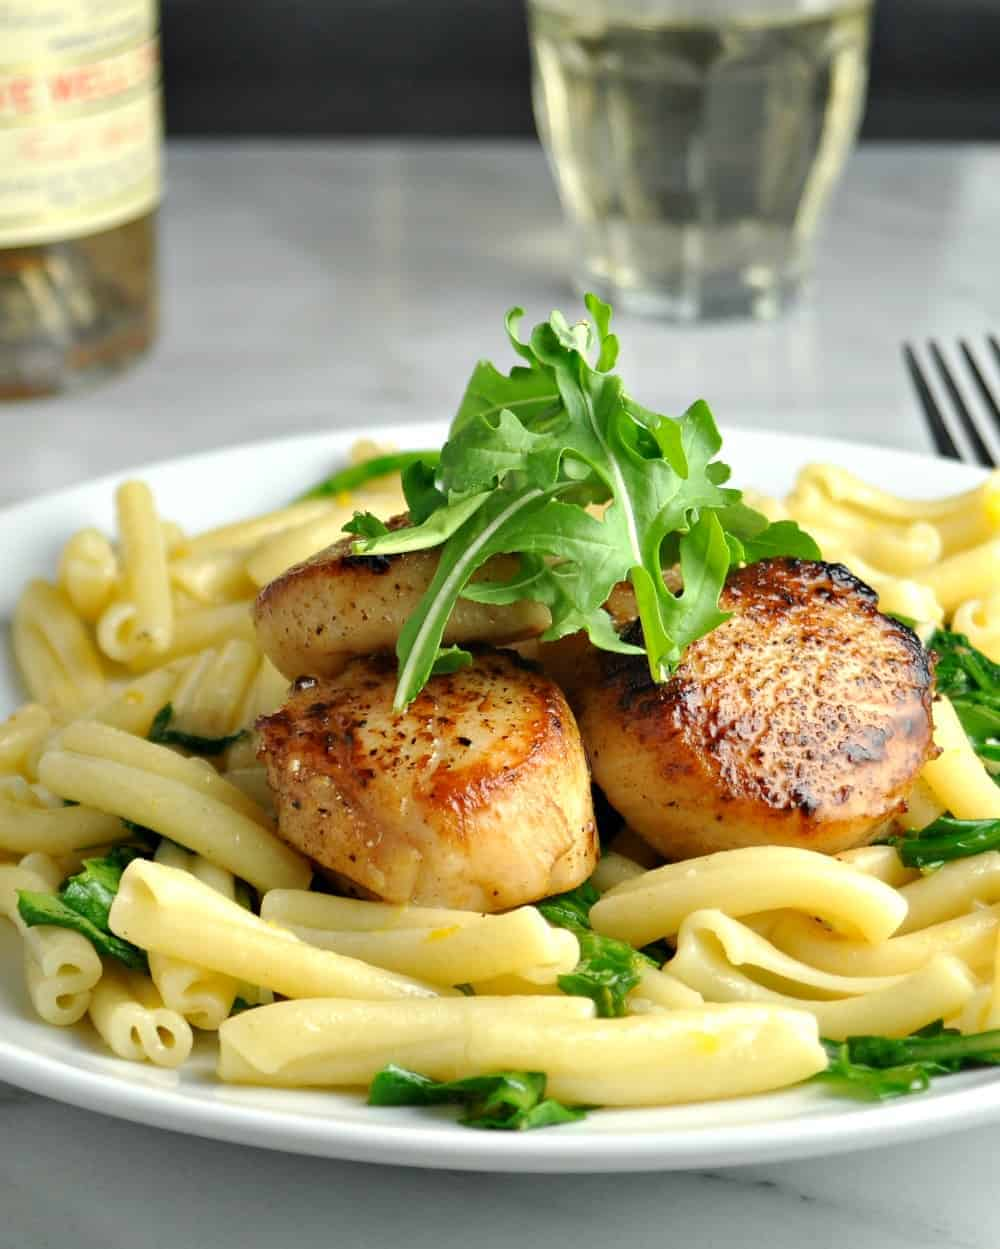 Scallops with Pasta served on a white plate